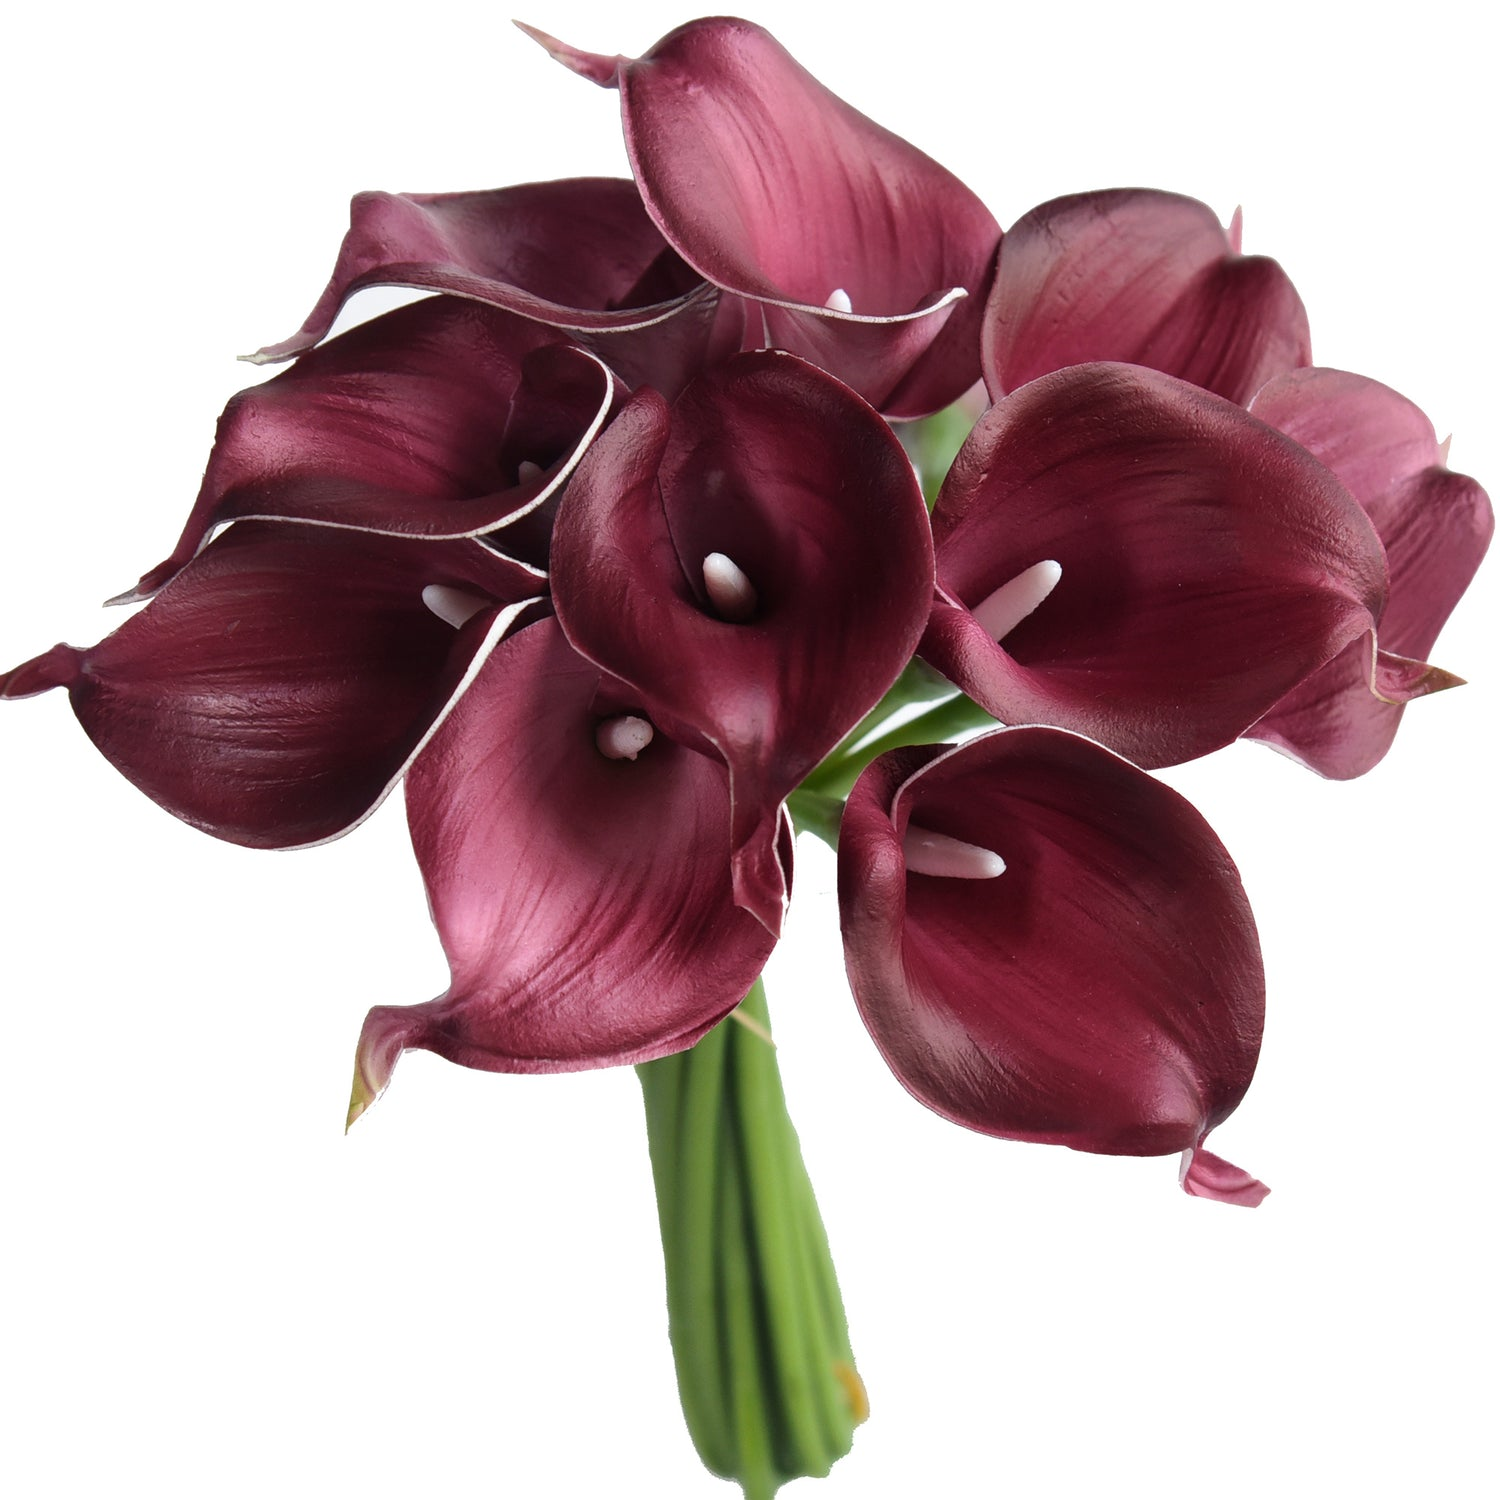 Burgundy red real touch 18 pcs artificial PU Calla Lily flowers 14 inches CA USA Seller